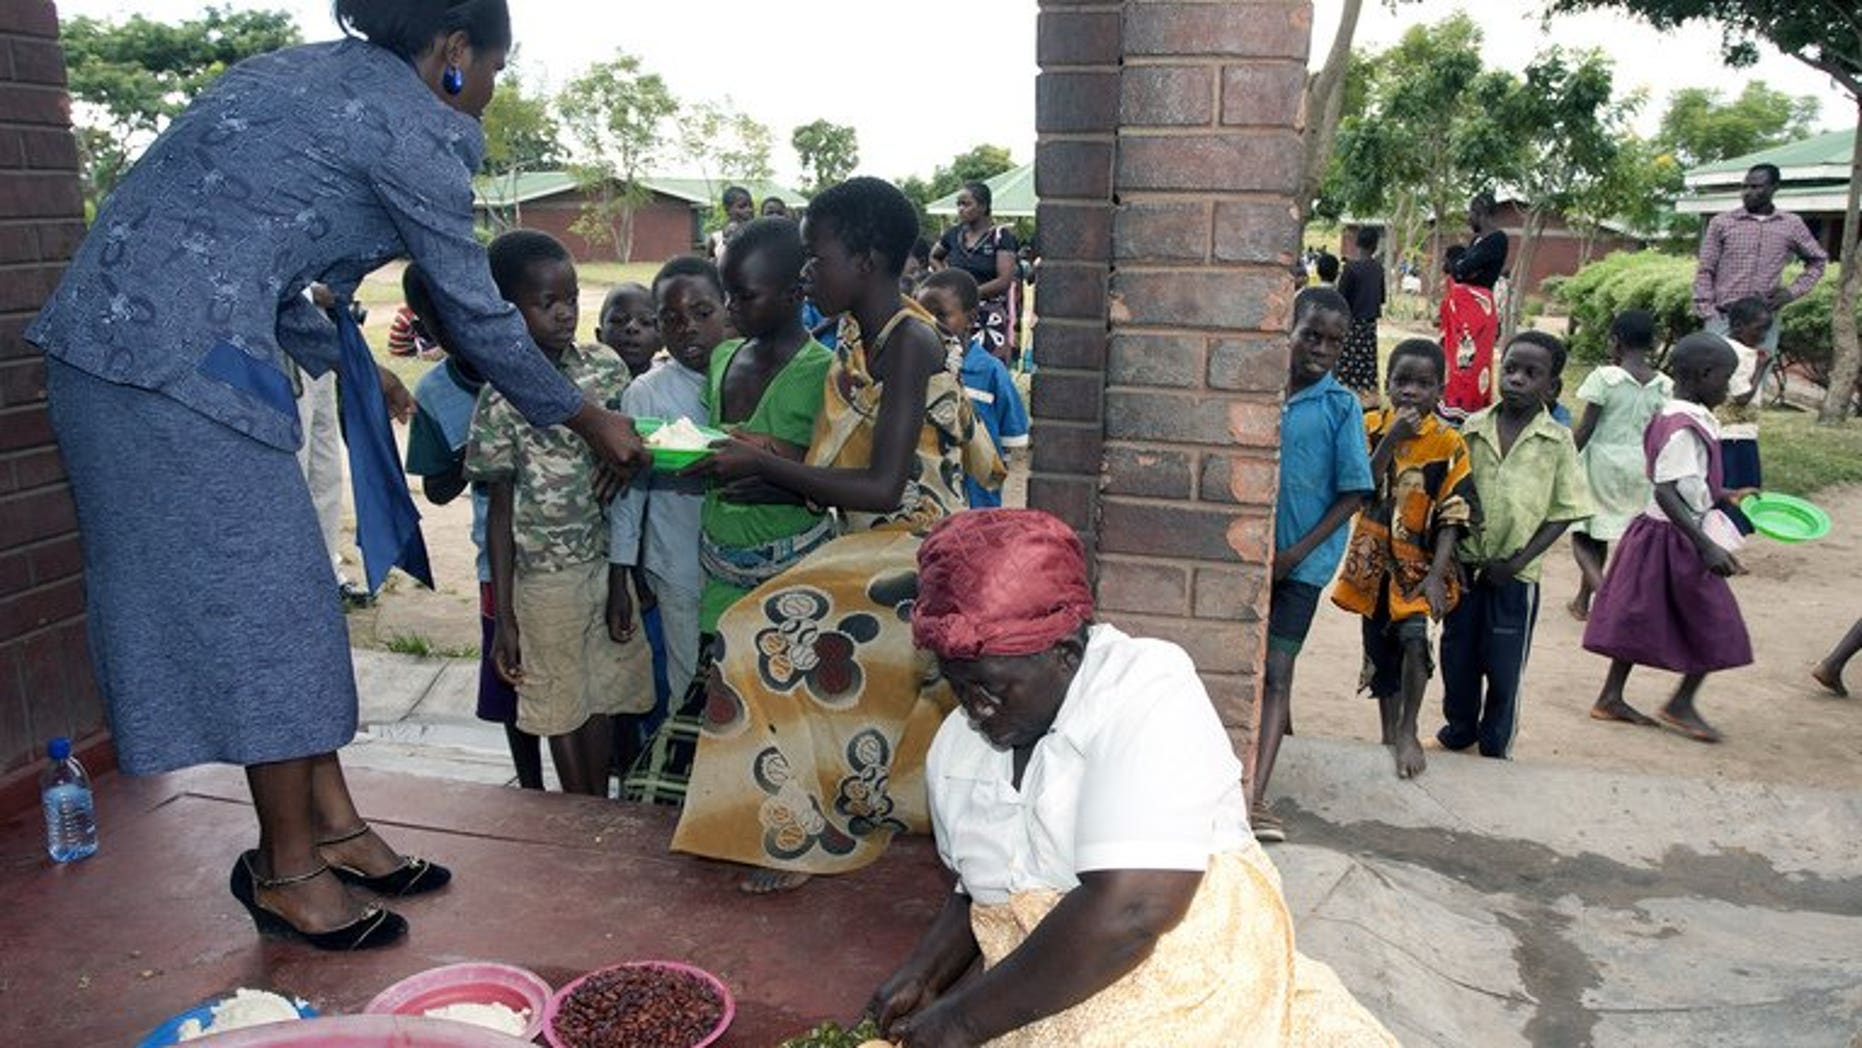 Children receive food at Mphandula Childcare Centre in Namitete on April 5, 2013. Malawi's runaway population growth has put pressure on scarce resources and so hampered development in the impoverished southern African nation, President Joyce Banda said Saturday.